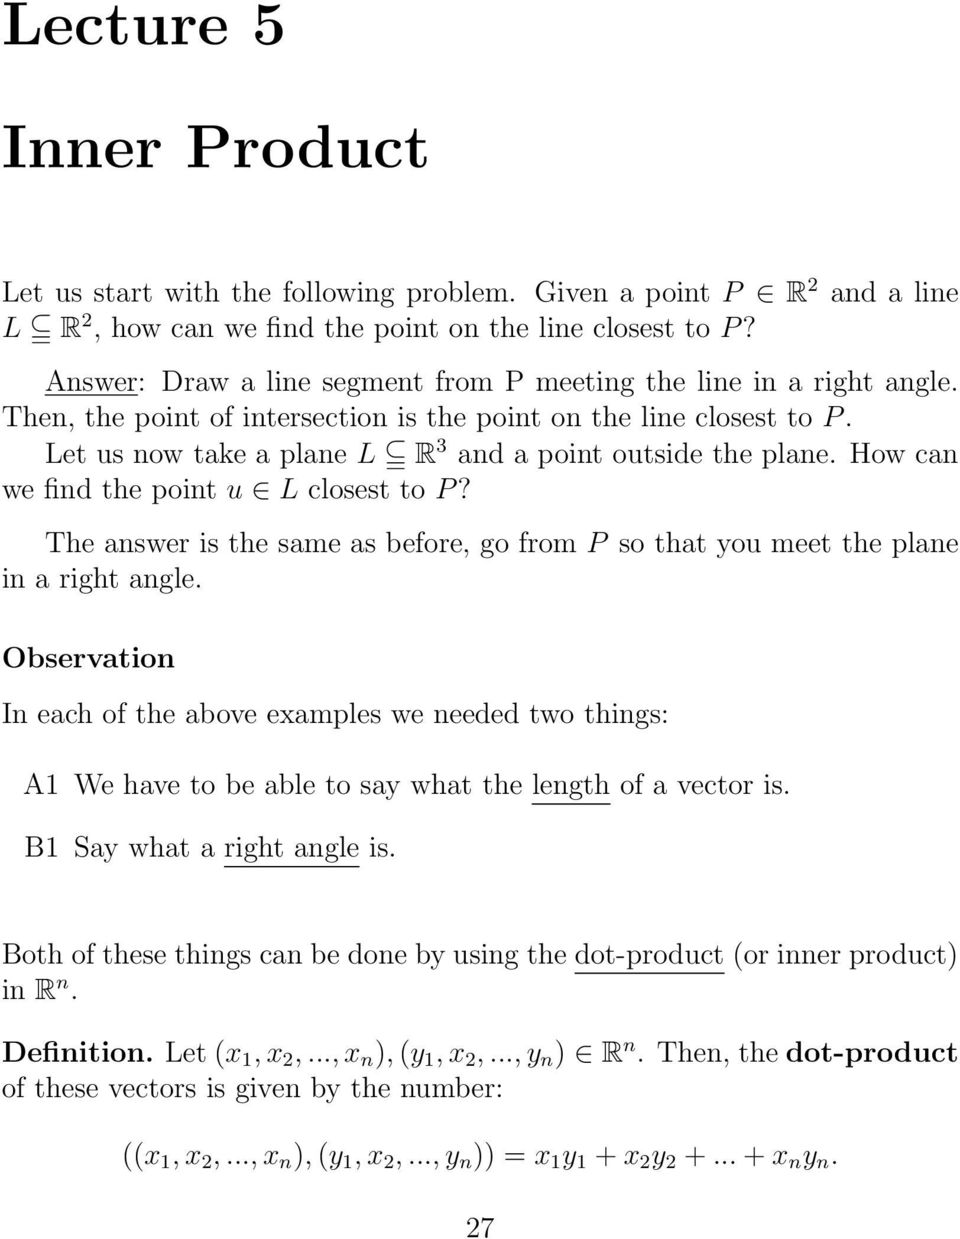 How cn we find the point u L closest to P? The nswer is the sme s before, go from P so tht you meet the plne in right ngle.